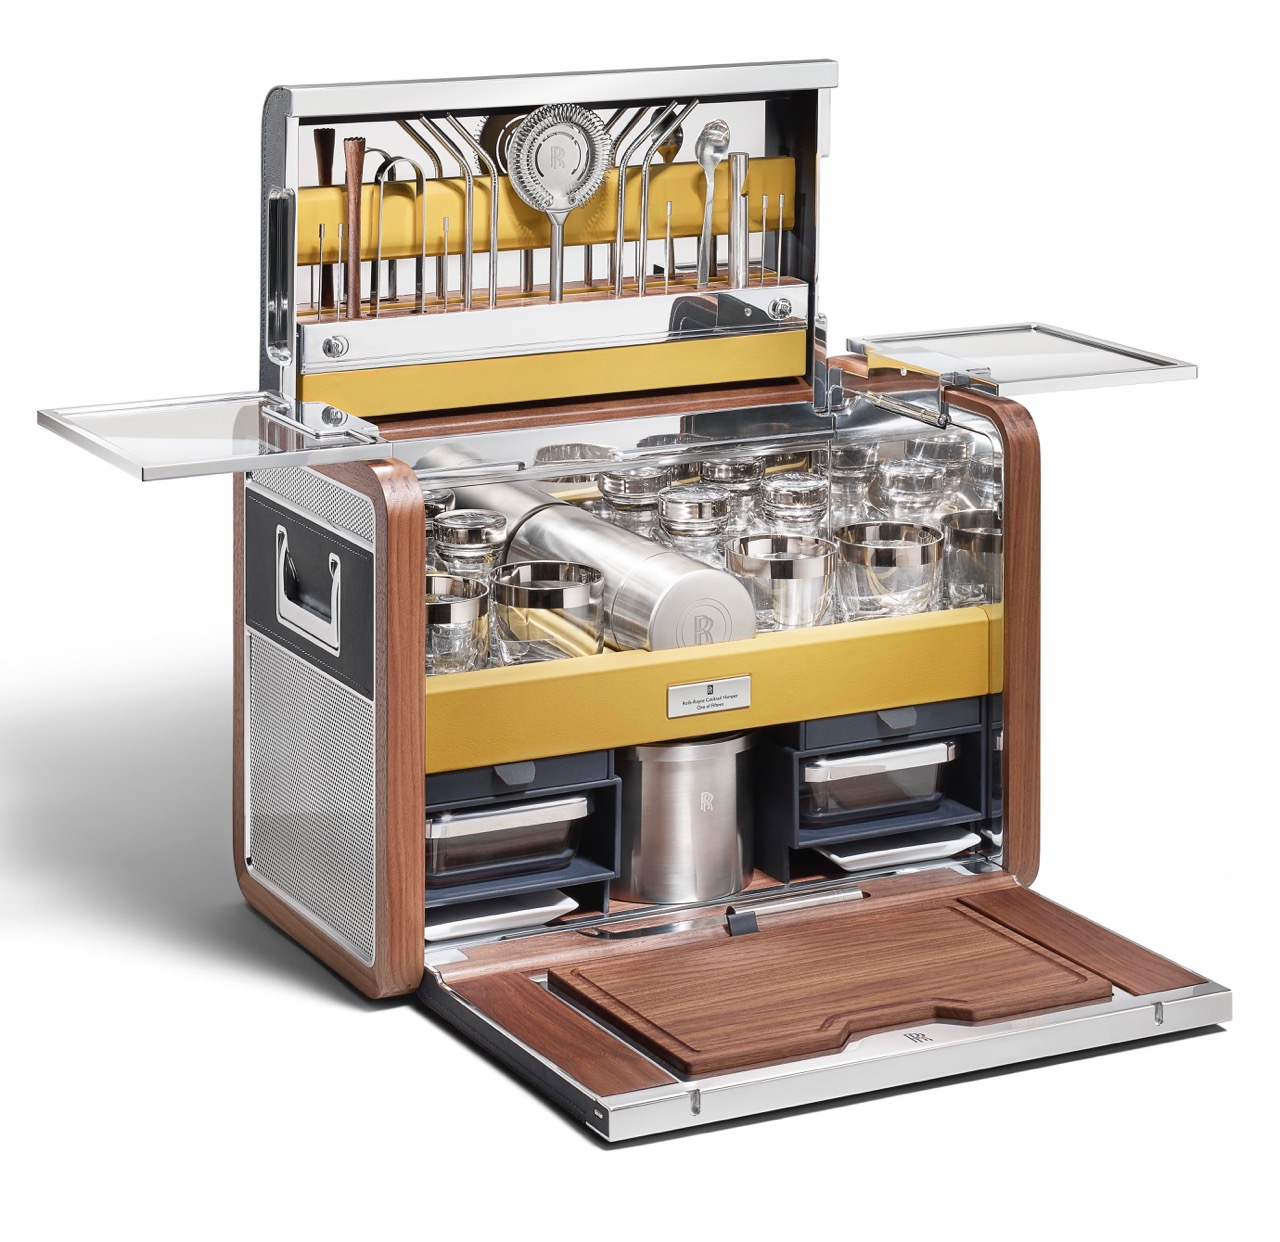 Rolls-Royce offers the $46,328 'Cocktail Hamper' | Rolls-Royce photo